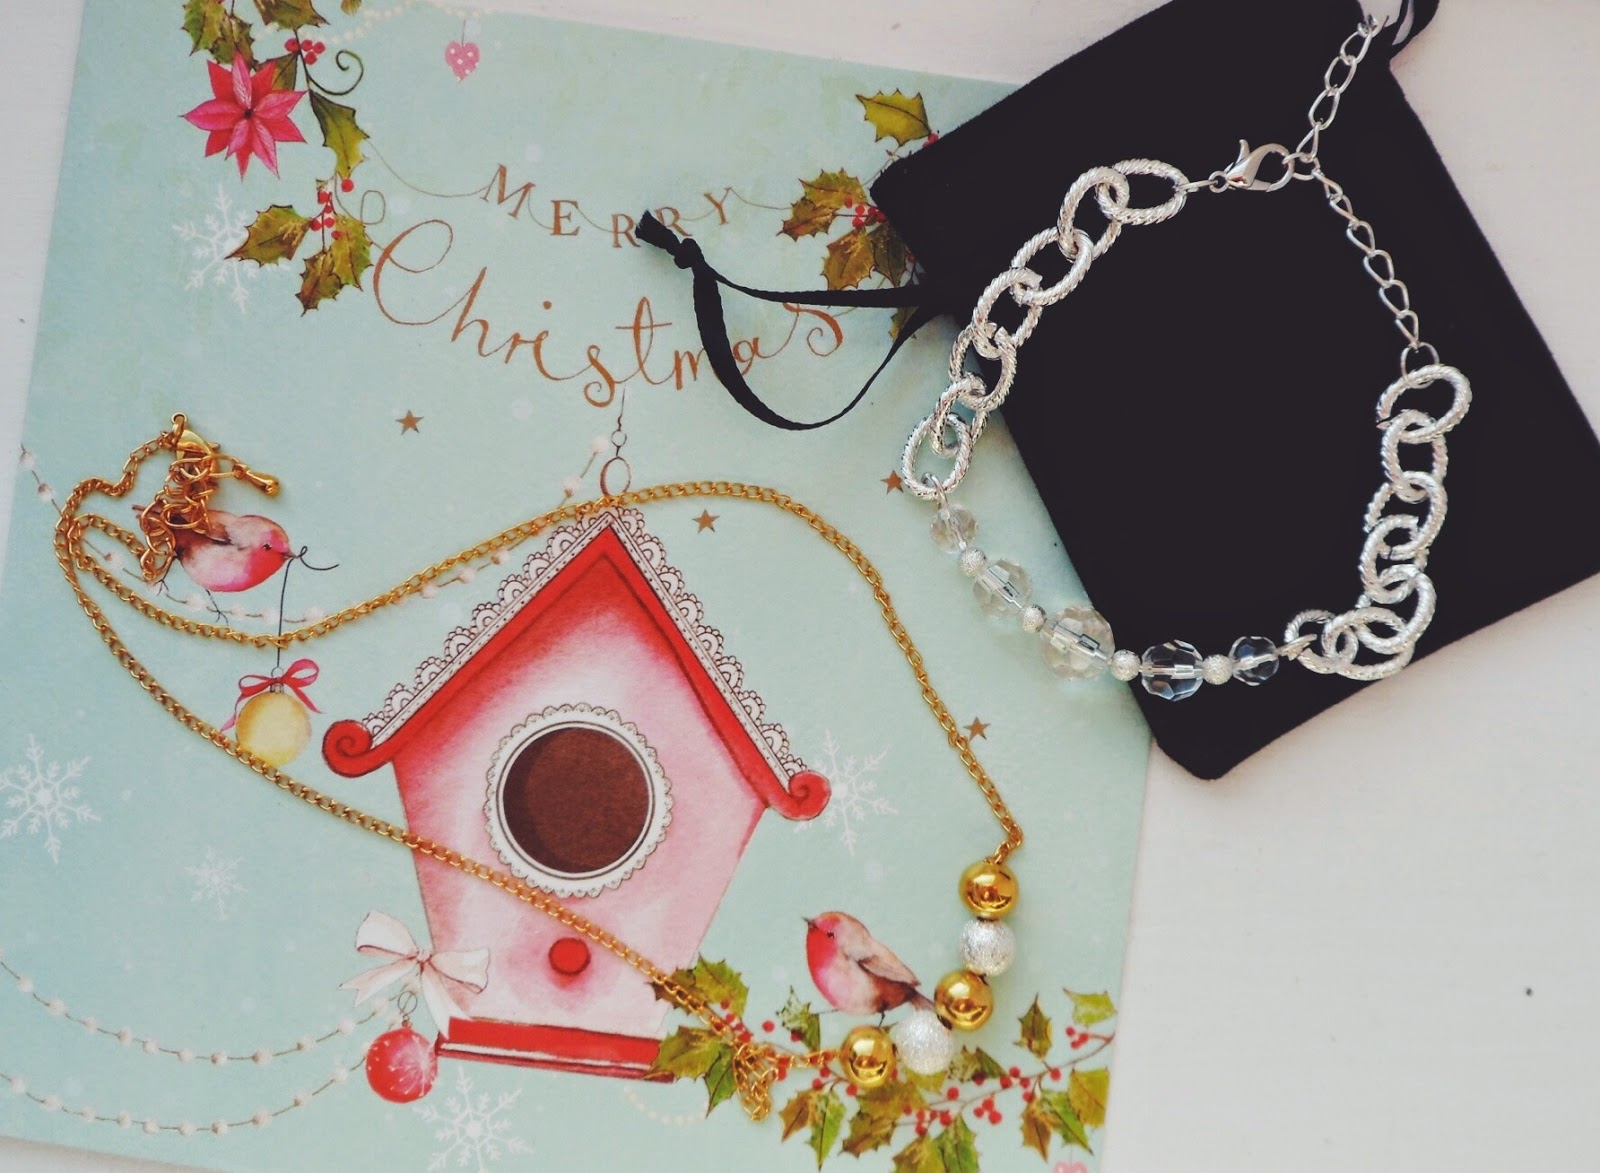 asseenonme, raaijewellery, wiw, review, jewellery, whatimwearing, ootd, outfitoftheday, fbloggers, fblogger, fashion, fashionbloggers, lotd, lookoftheday, christmasjewellery